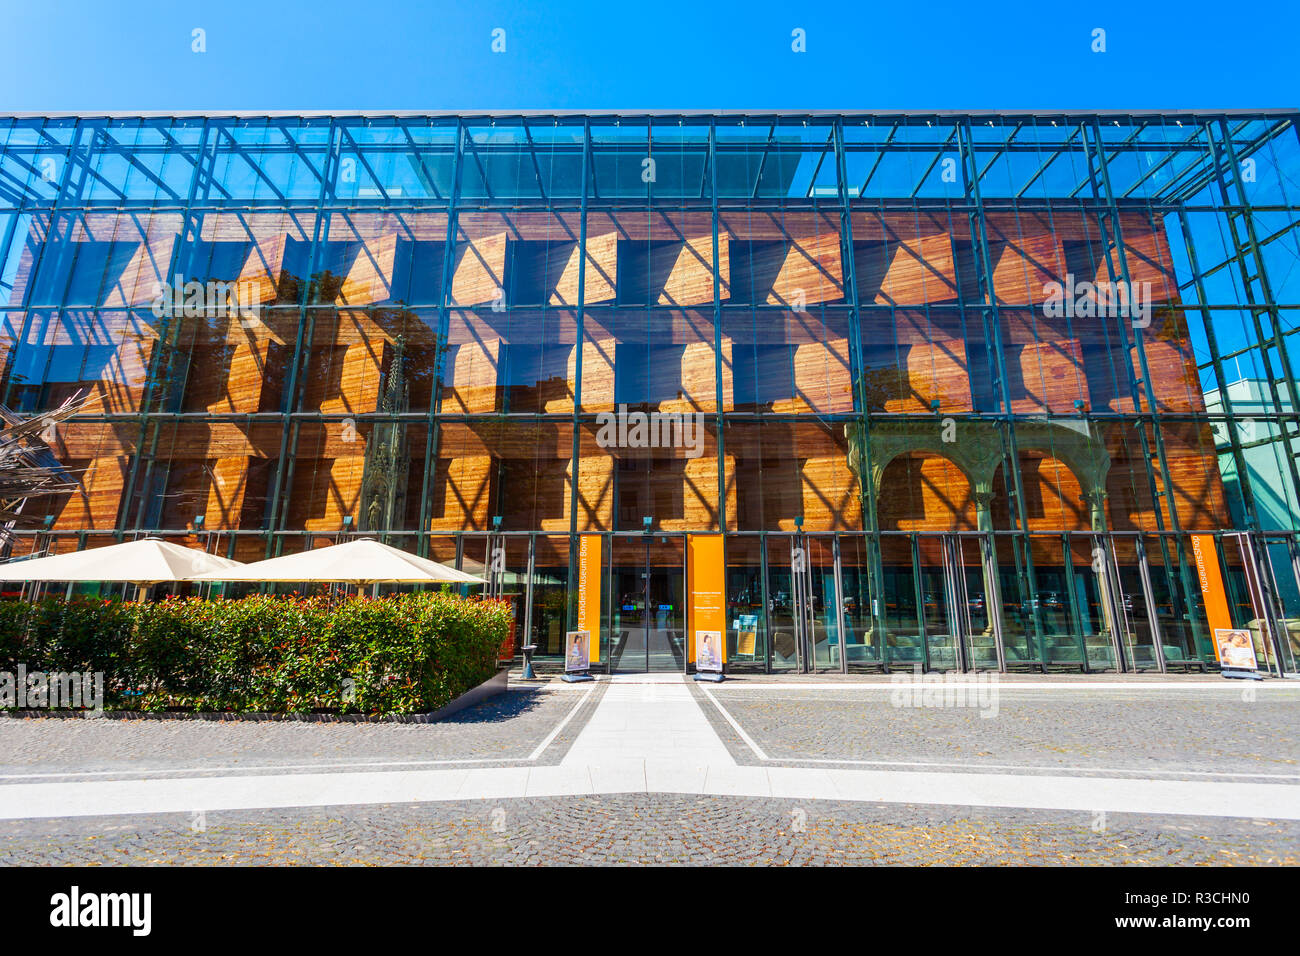 BONN, GERMANY - JUNE 29, 2018: Rheinisches Landesmuseum Bonn is a one of the oldest museum in Bonn, Germany Stock Photo